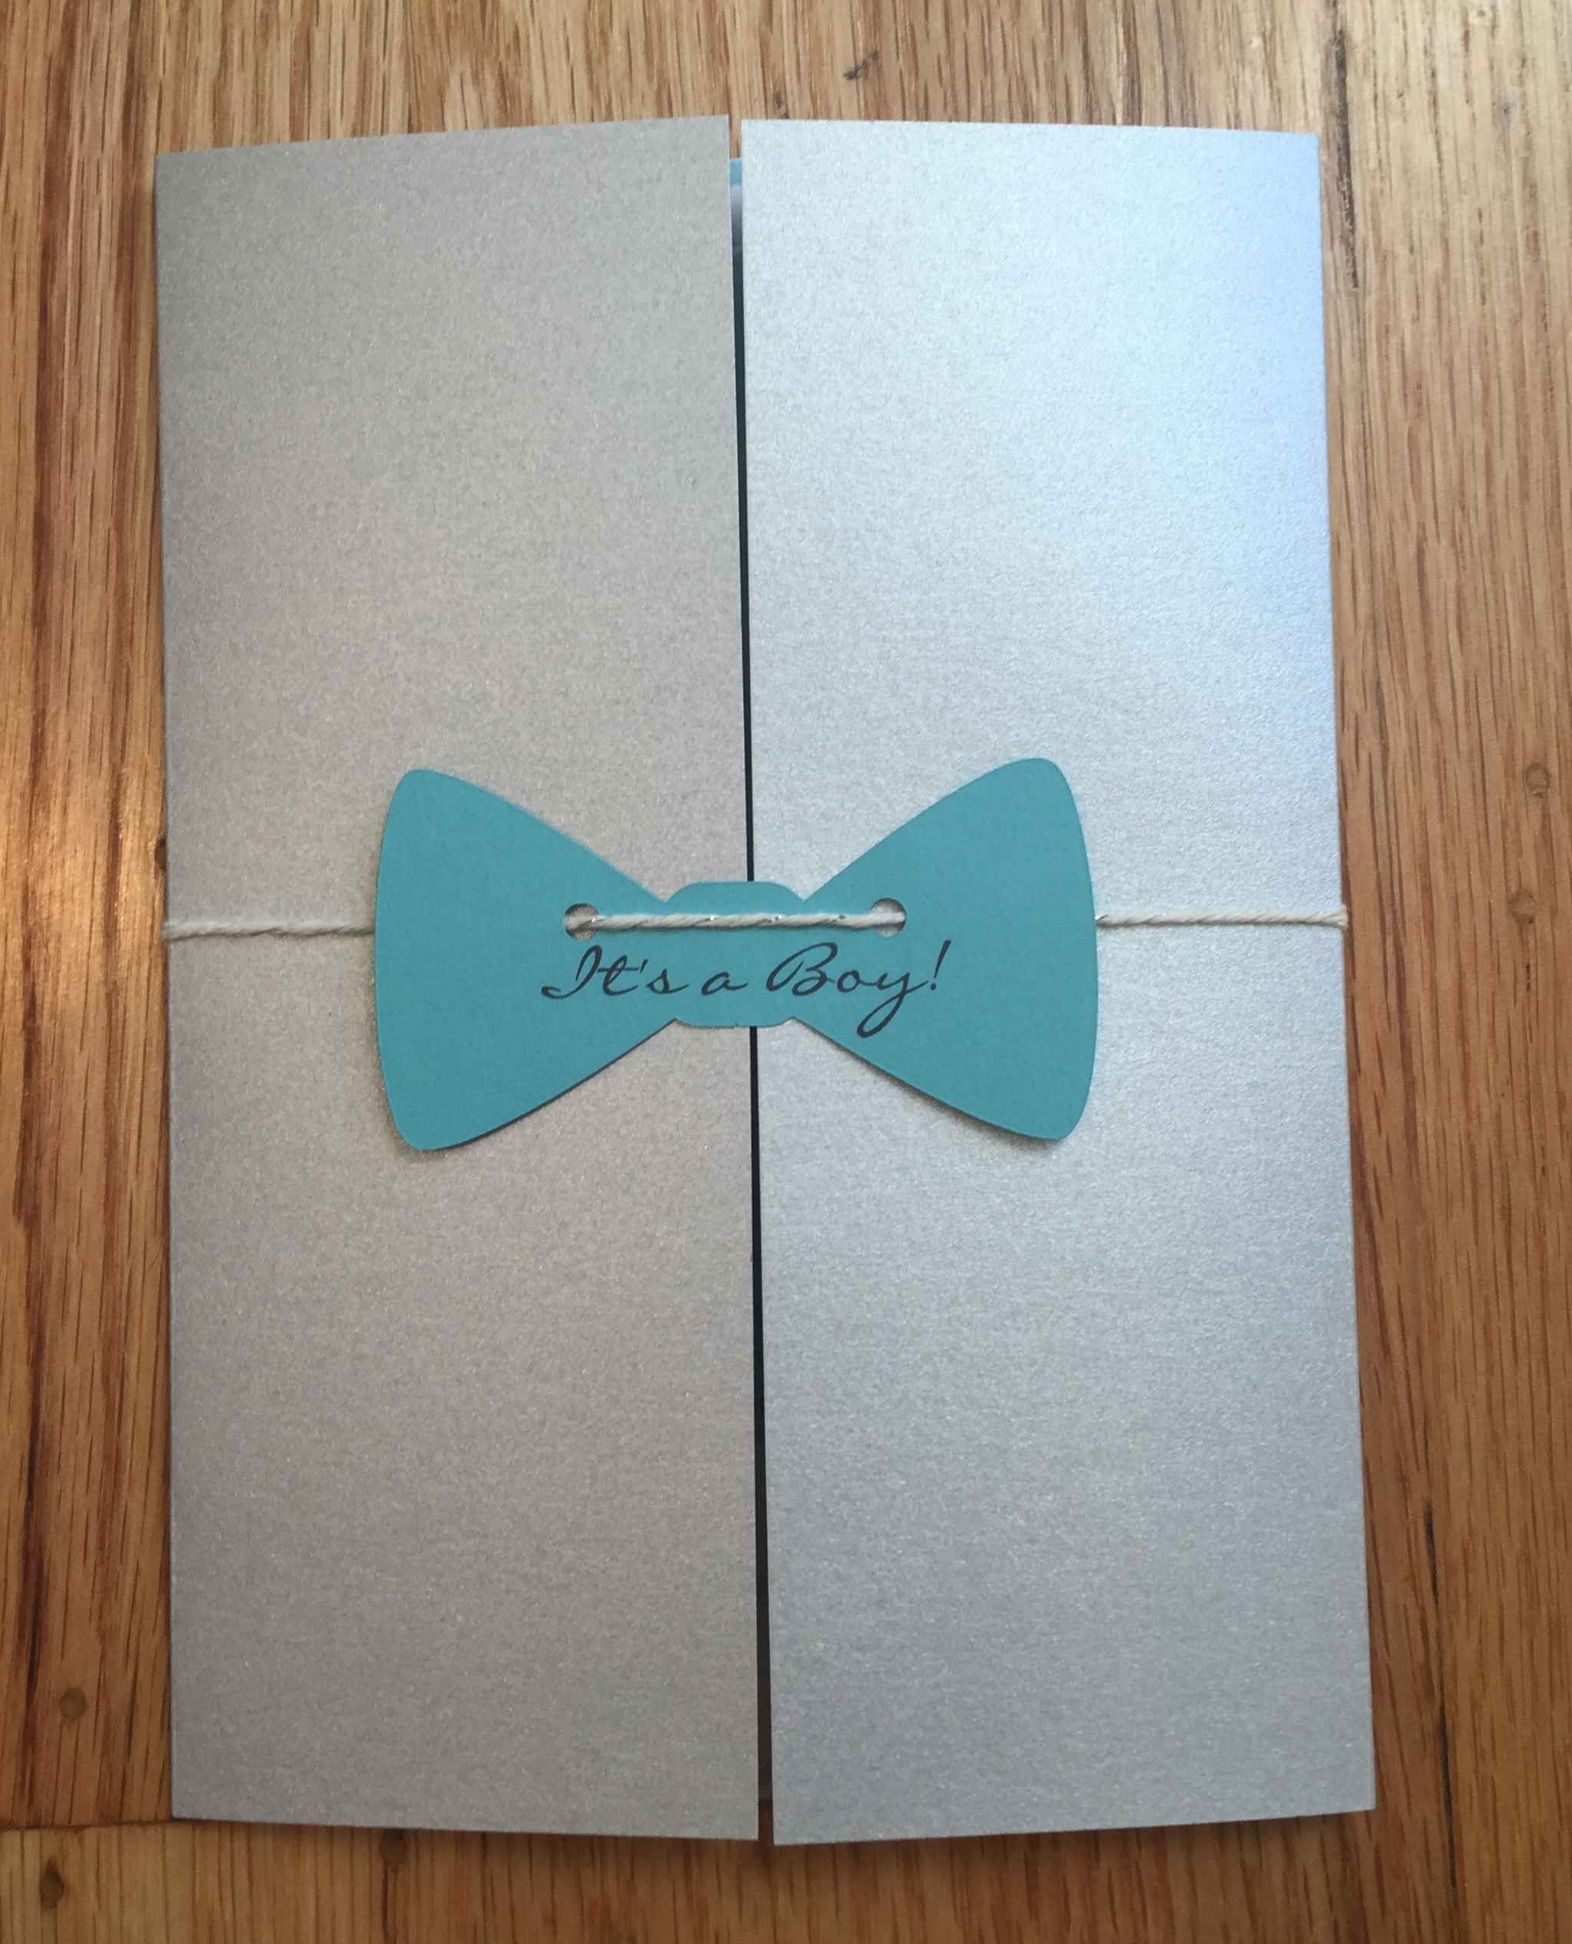 "img src=""httpwww.theparkwayevents.jpg"" alt=""San Francisco Bay Area Event Planner Baby Shower Custom Invitation"".jpg"